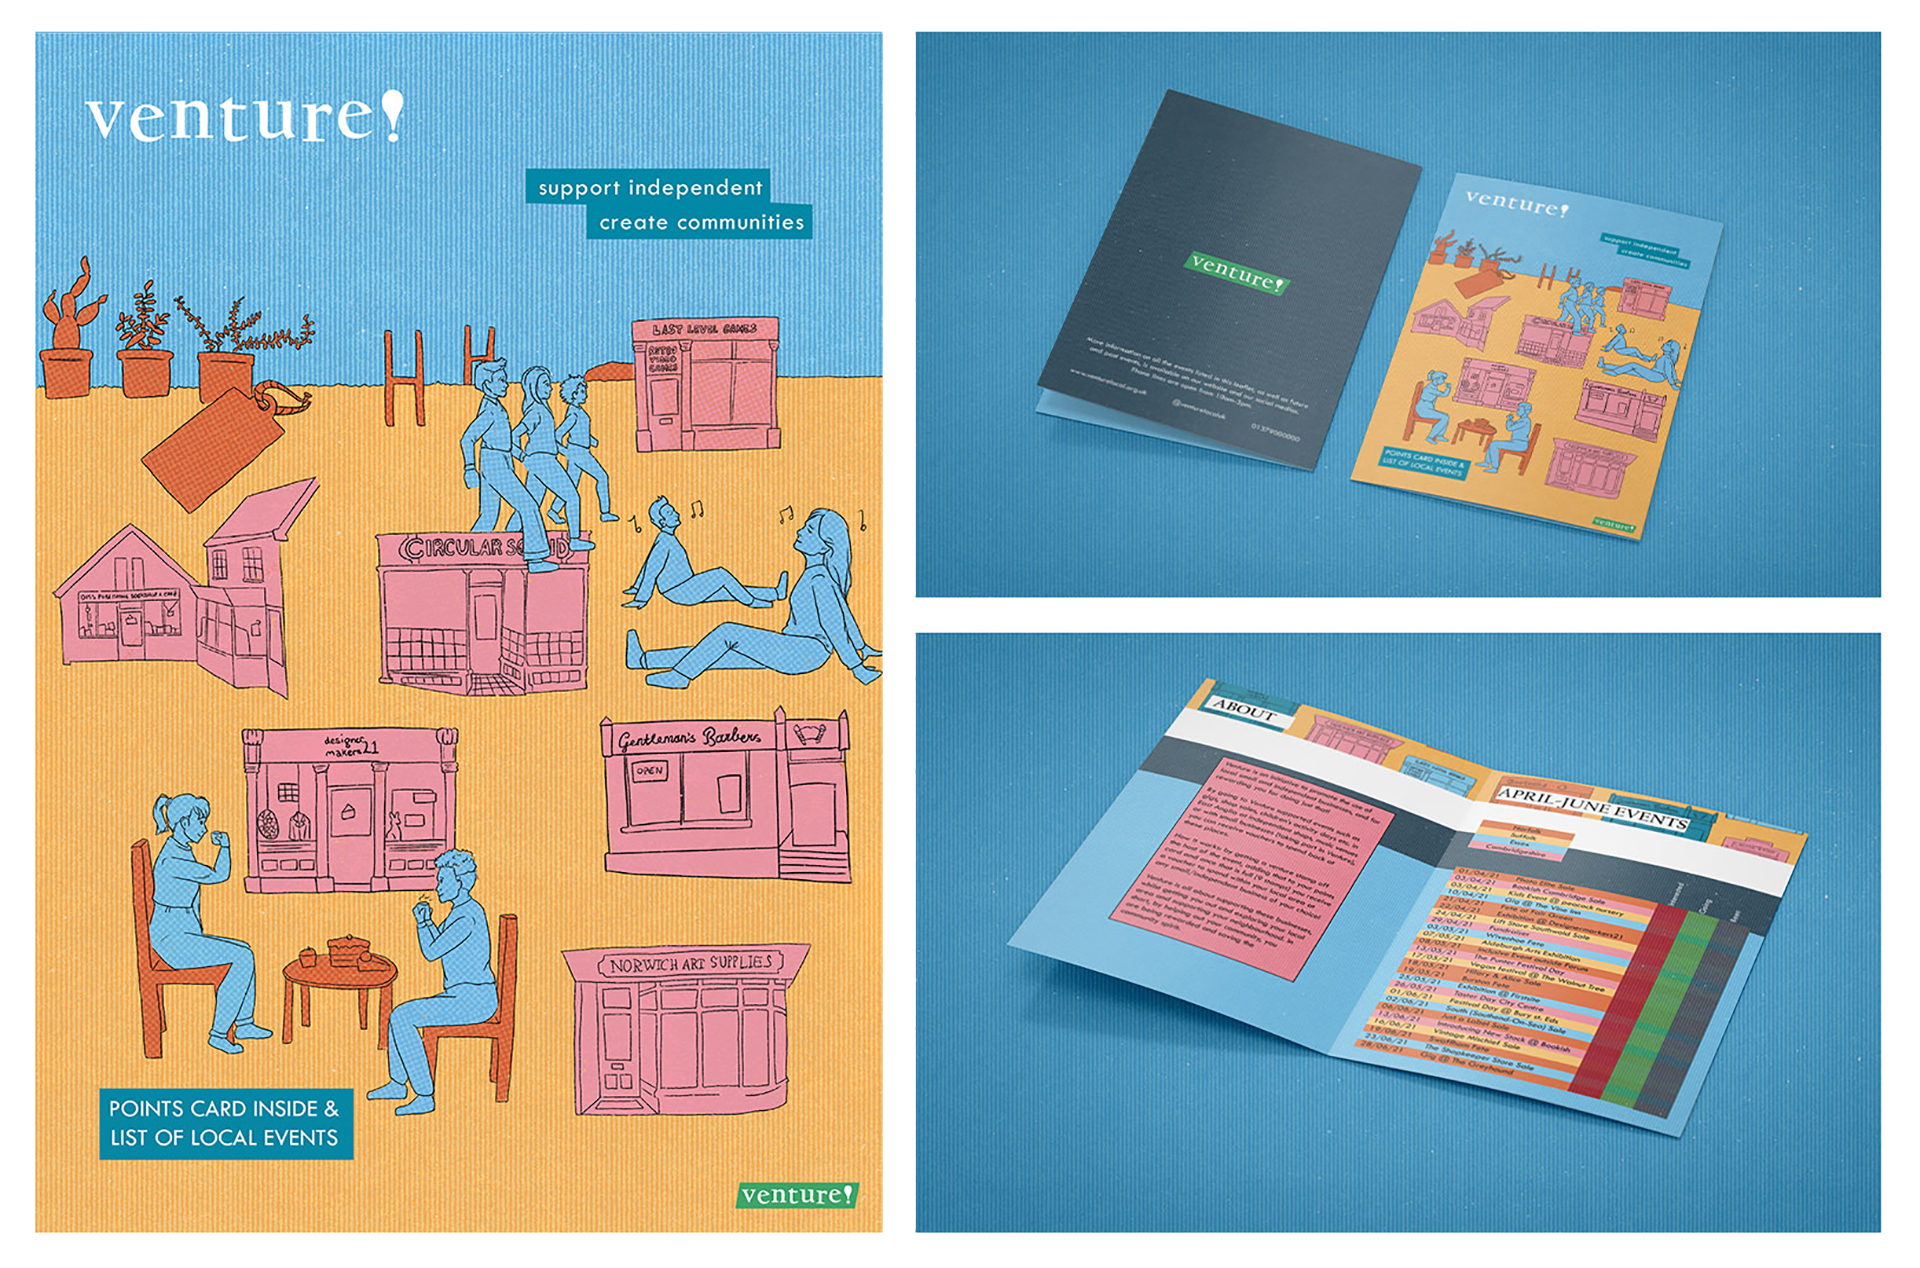 3 images of a poster and leaflet containing hand-drawn images of buildings and people relaxing